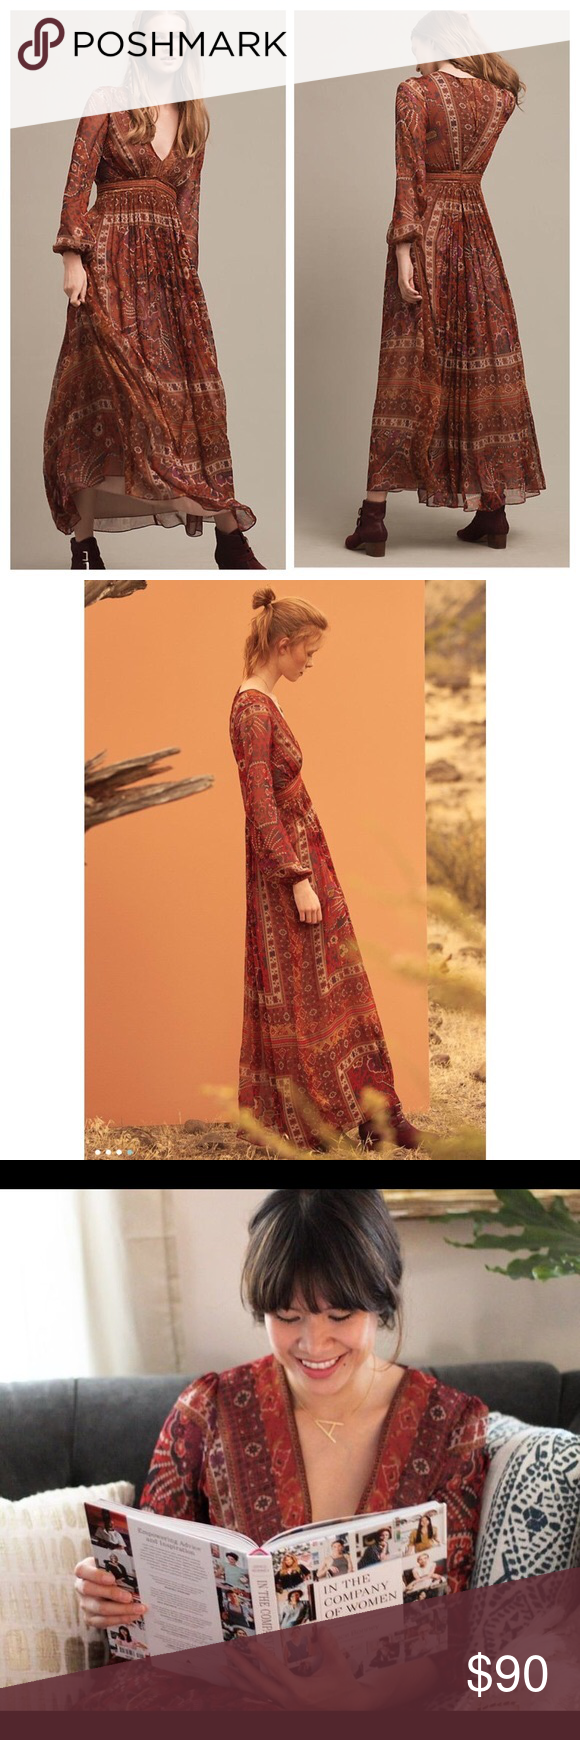 "a951d87a76b Ranna Gill Ceret Maxi Dress by Anthropologie NWOT New without tag. Size 0.  Bought at Anthropologie. Minor ""defects"" that already came with the dress"